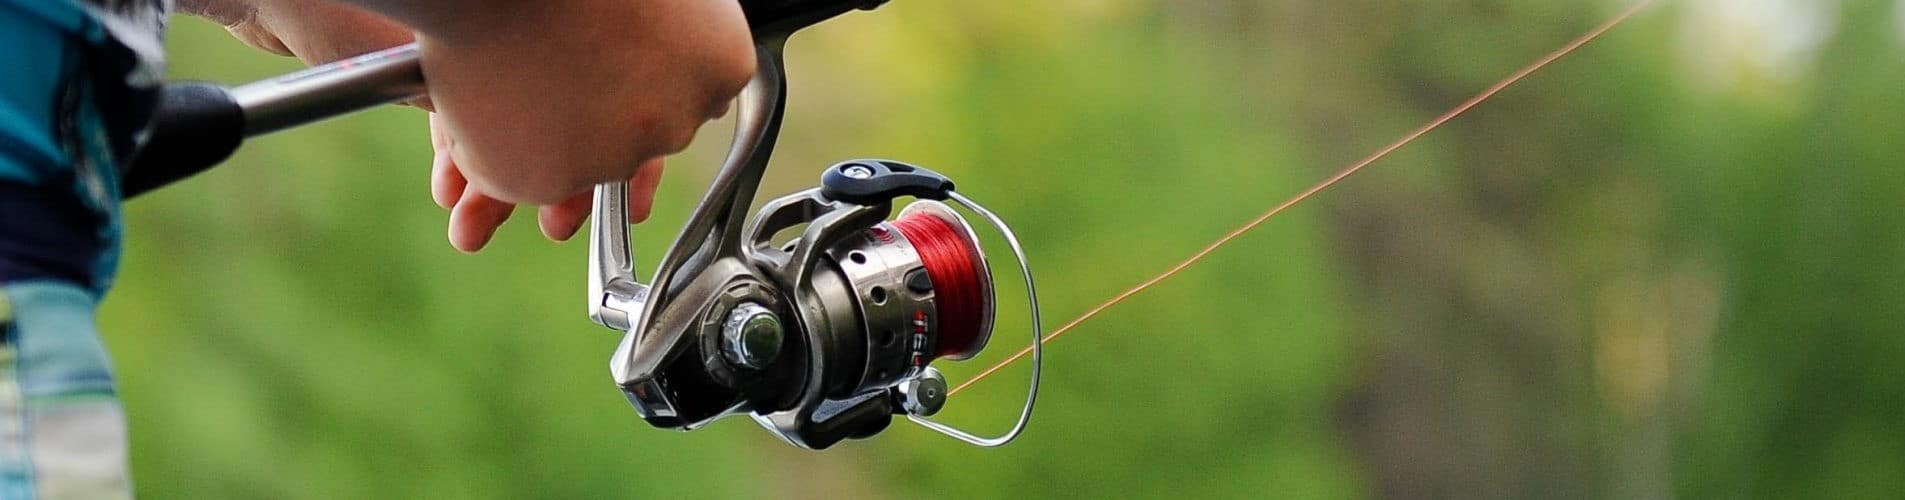 Best Fishing Reels - Top Rated and Reviewed